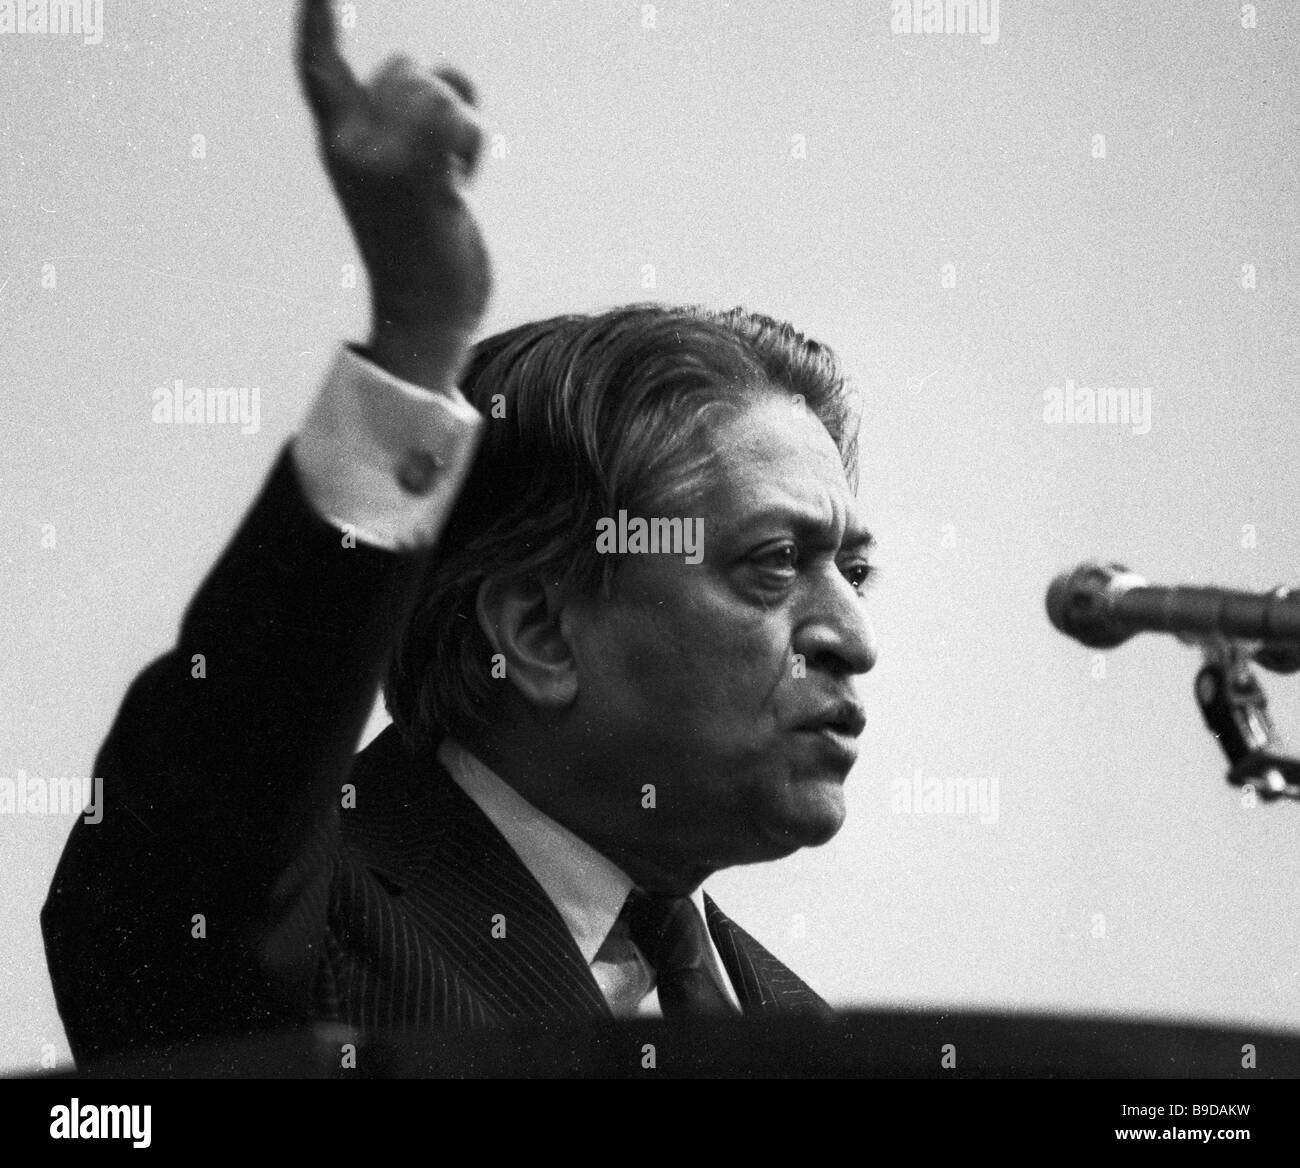 President of the World Peace Council Romesh Chandra speaking at an antiwar rally in Moscow - Stock Image